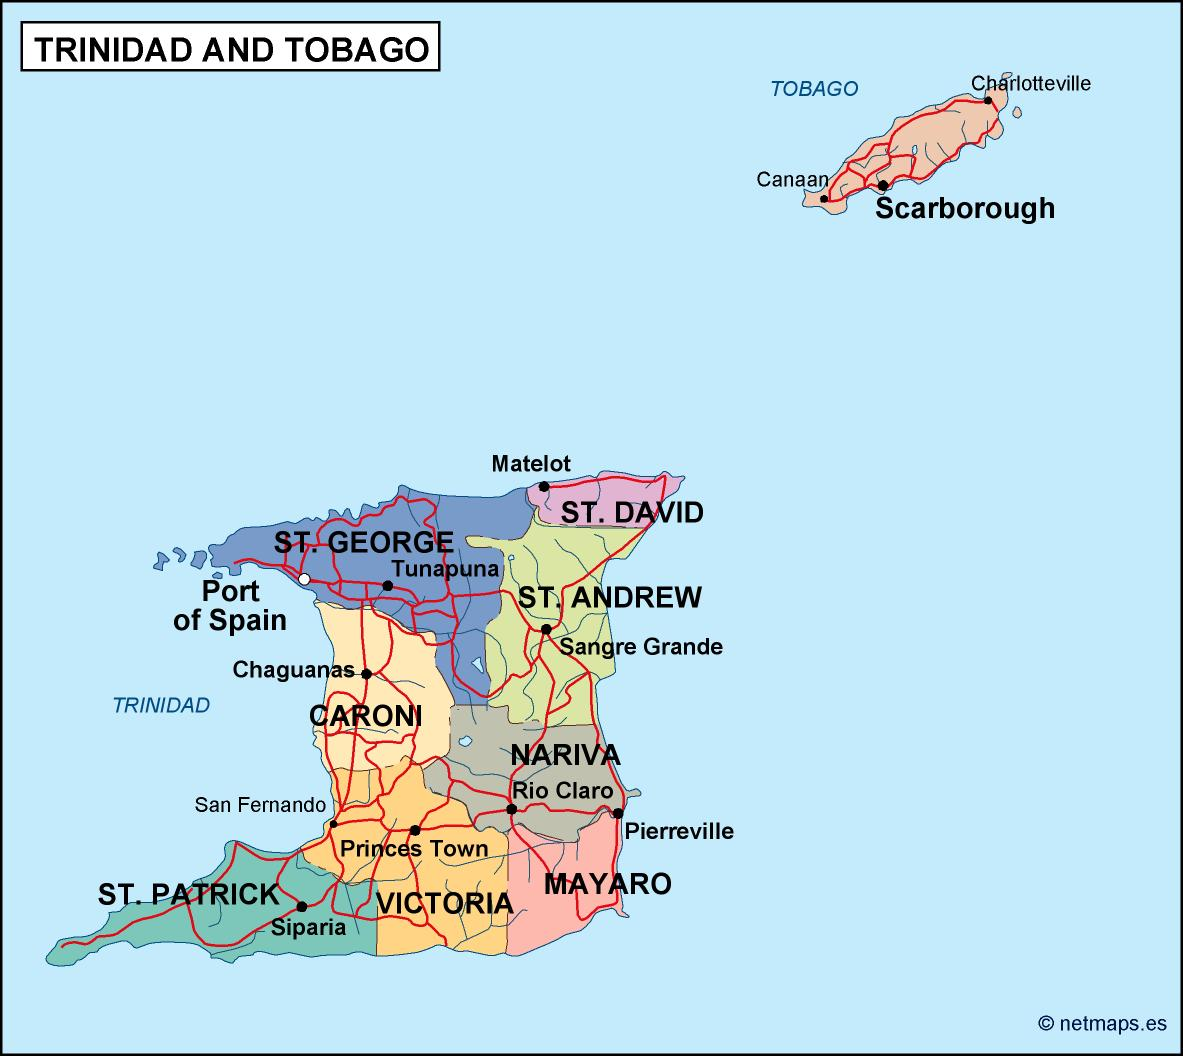 Trinidad And Tobago Political Map Order And Download Trinidad - Trinidad and tobago map